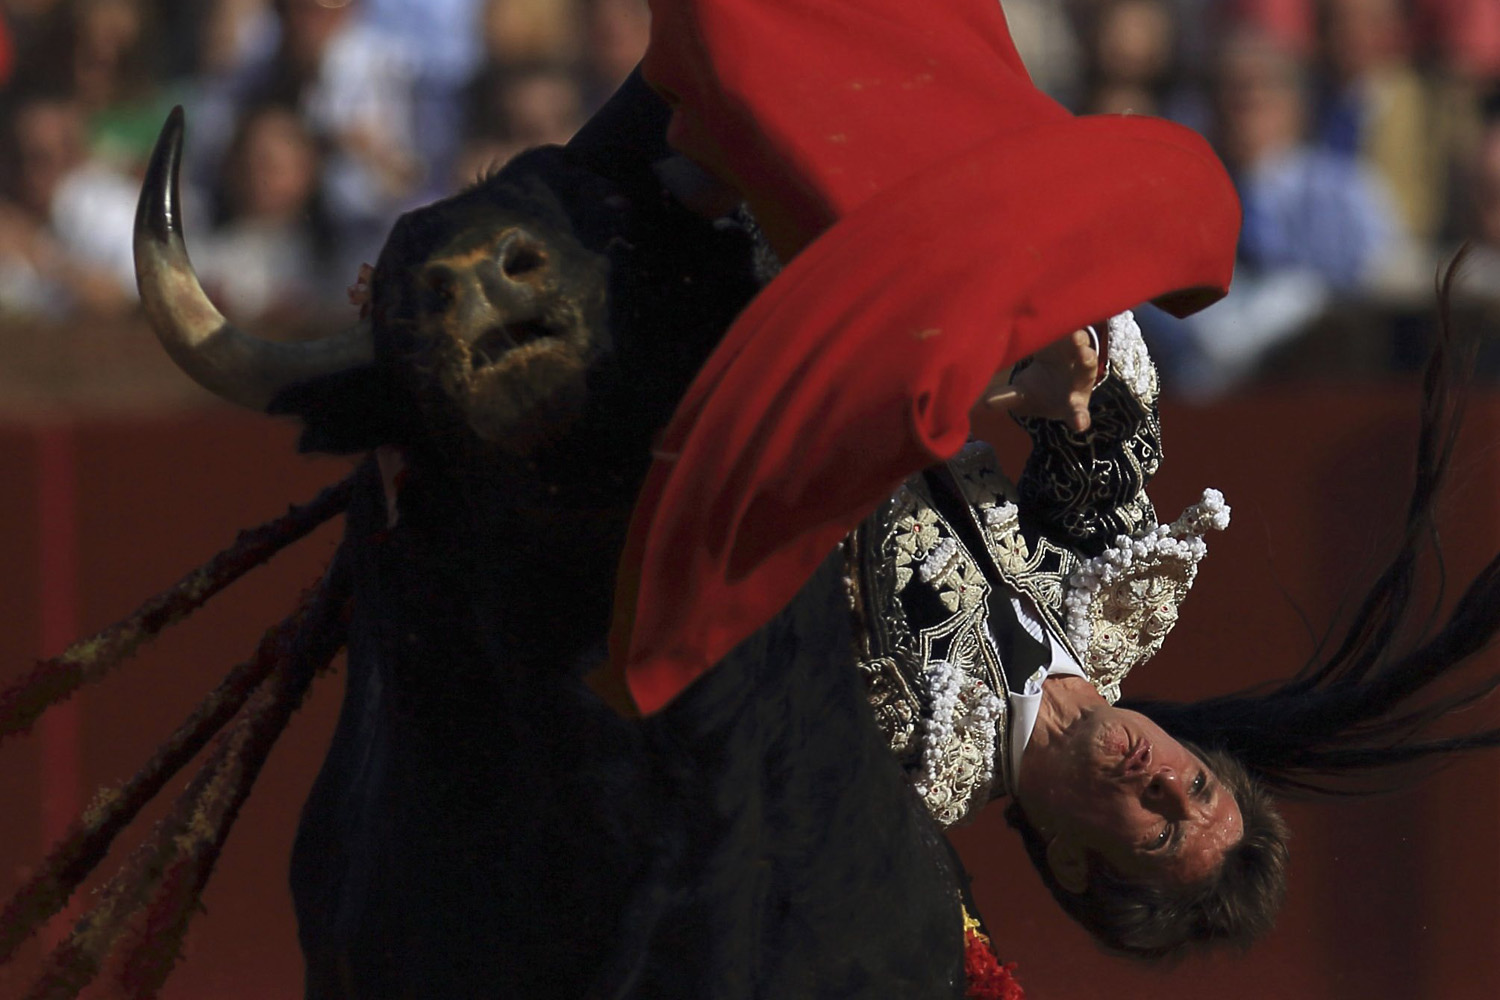 April 19, 2013. Spanish matador Julian Lopez  El Juli  is gored by a bull during a bullfight at The Maestranza bullring in the Andalusian capital of Seville, southern Spain.